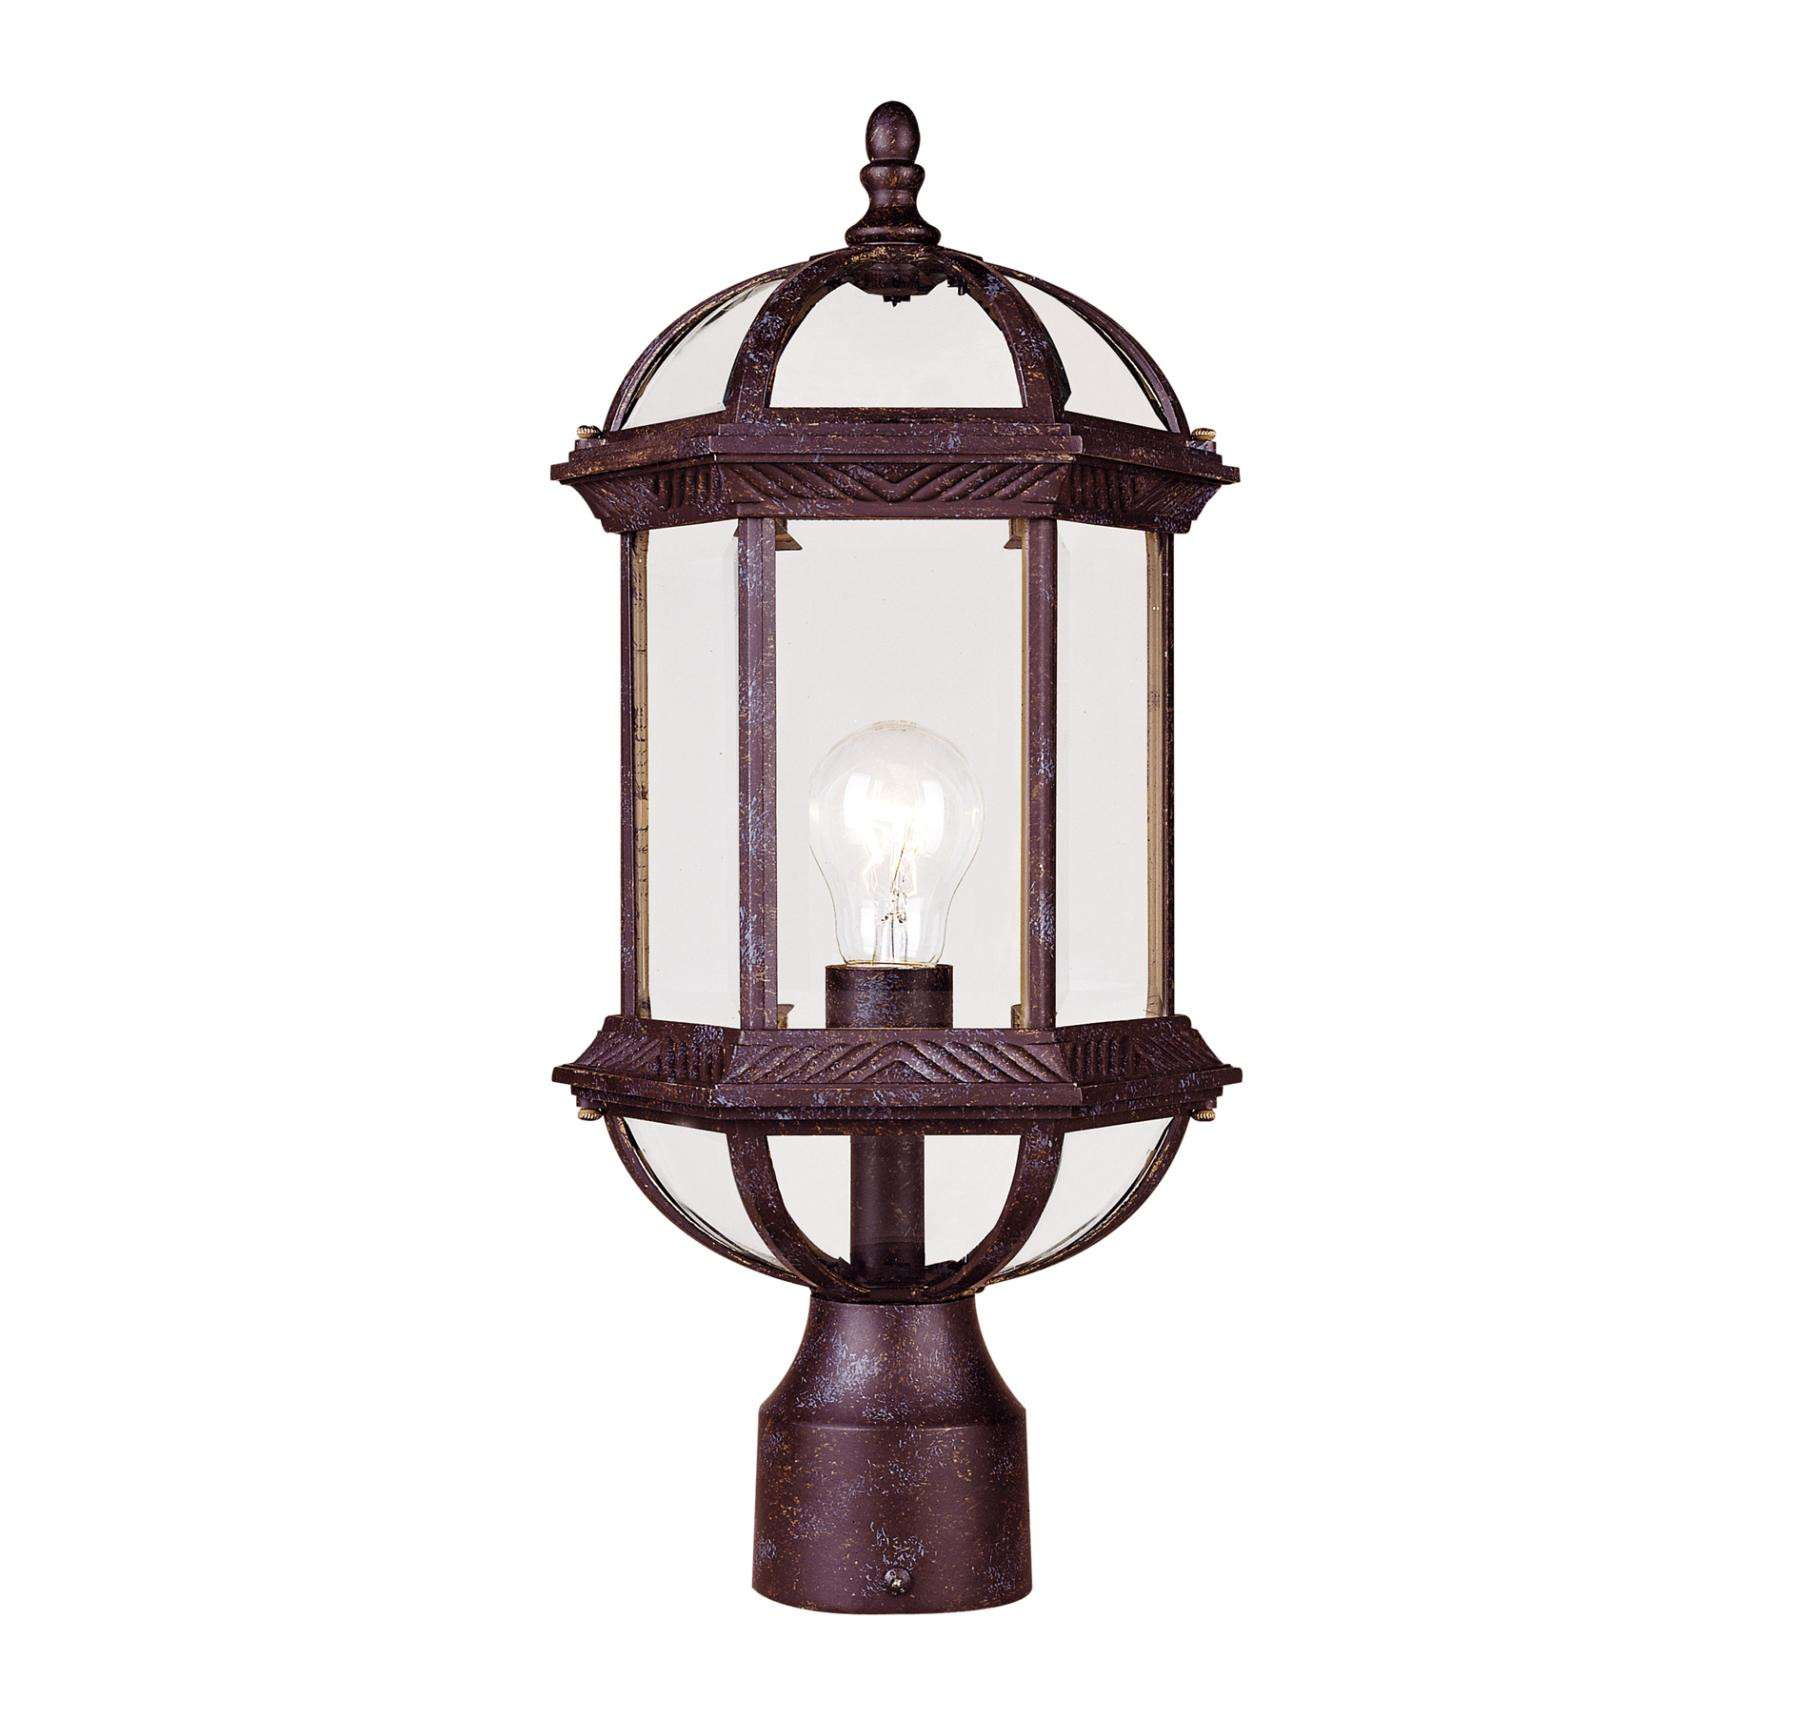 Savoy House 5-0632-72 Post Lantern in Rustic Bronze finish with Clear Beveled glass